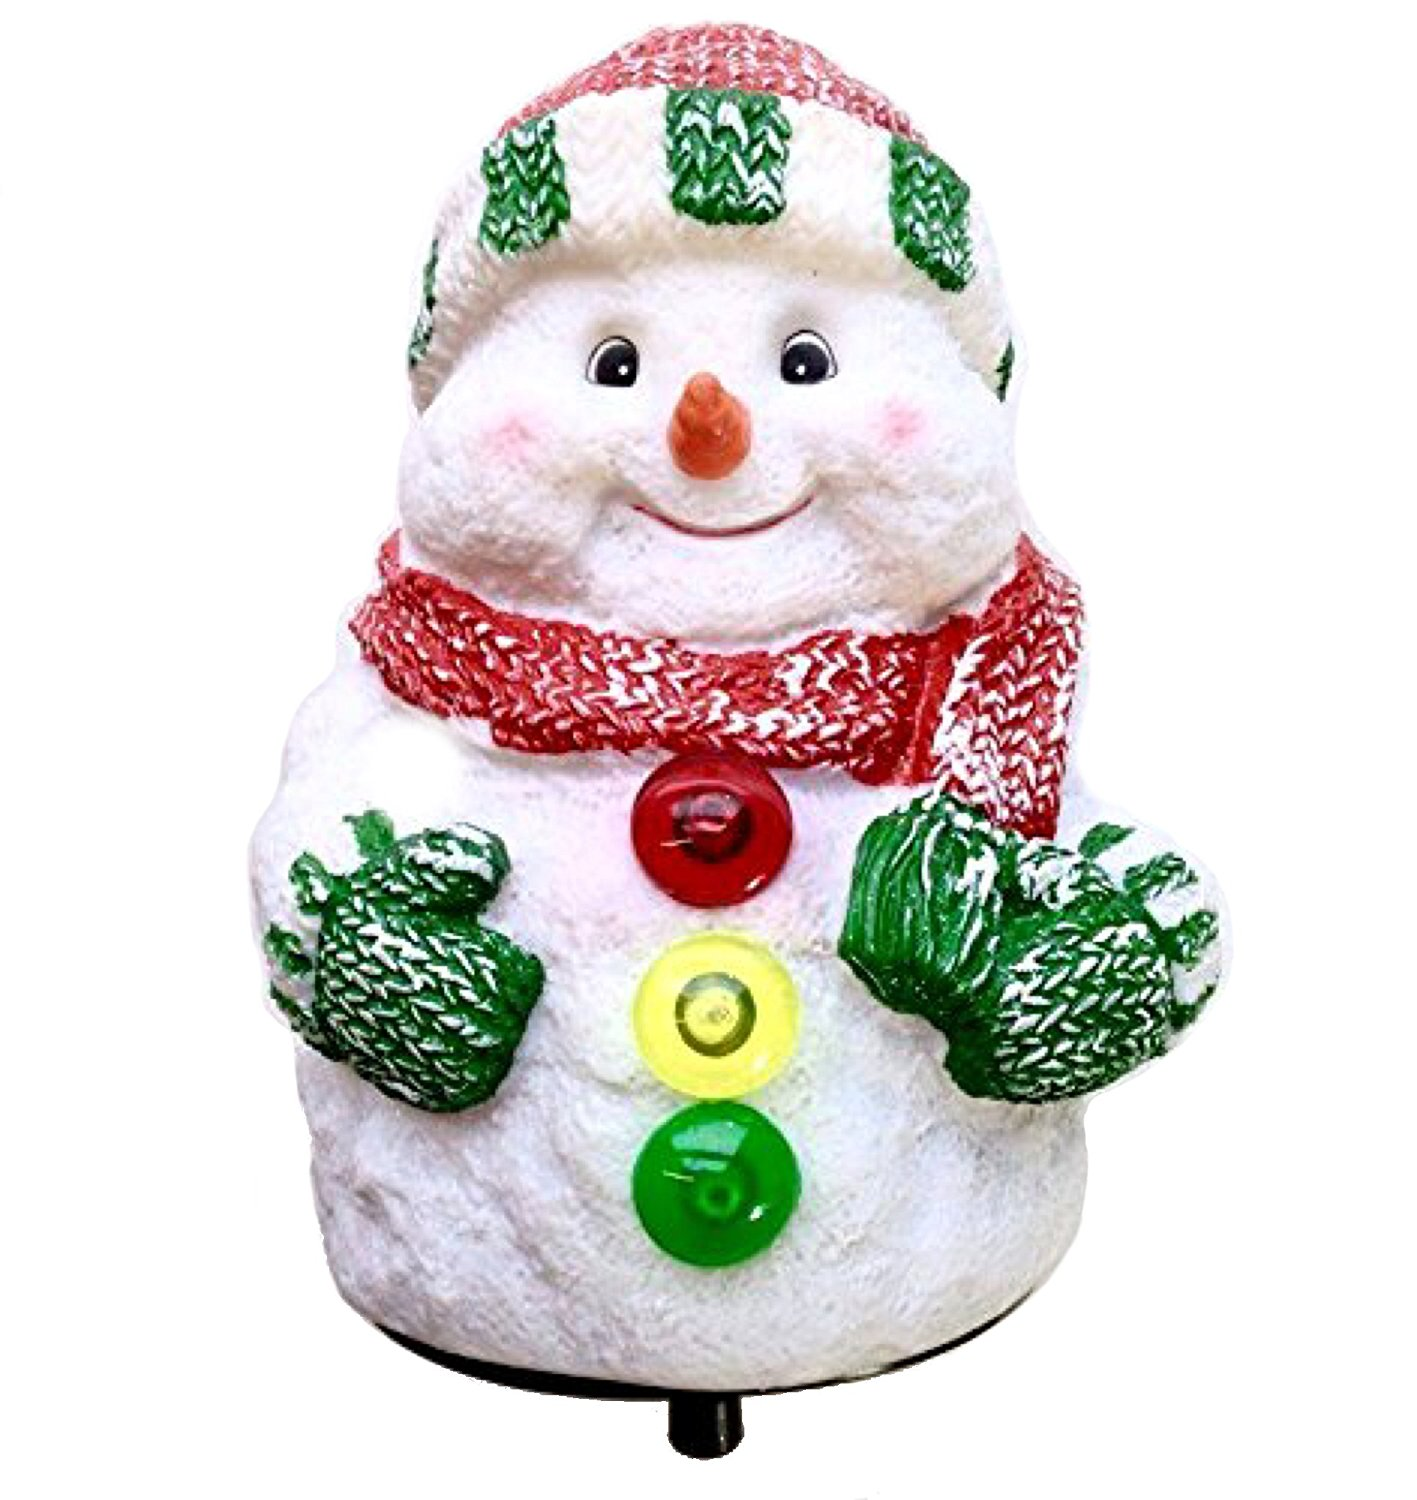 Cheap Dancing Singing Snowman Find Dancing Singing Snowman Deals On